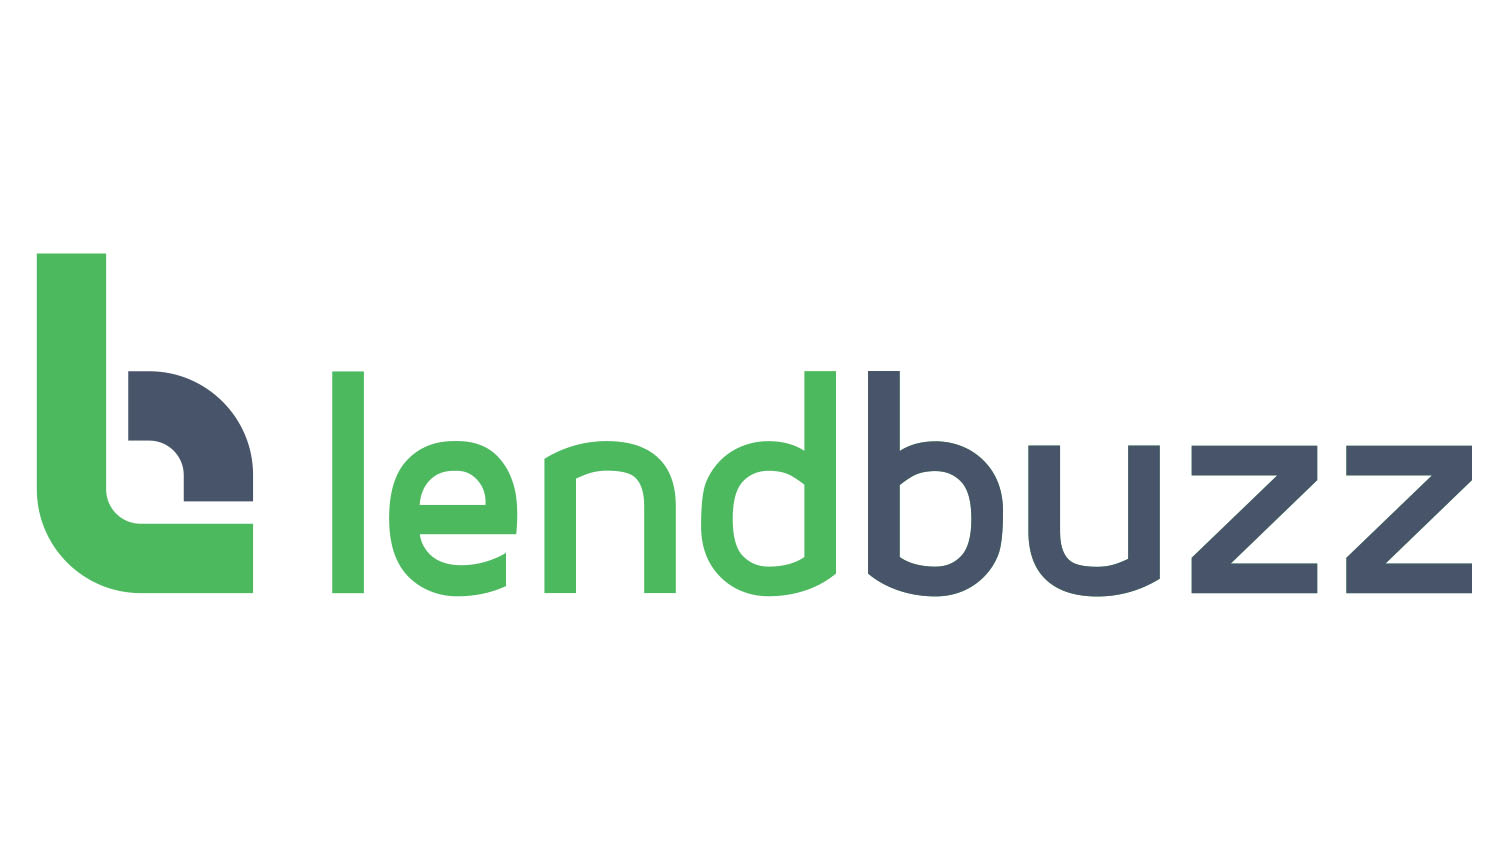 MUFG Innovation Partners invested in Lendbuzz